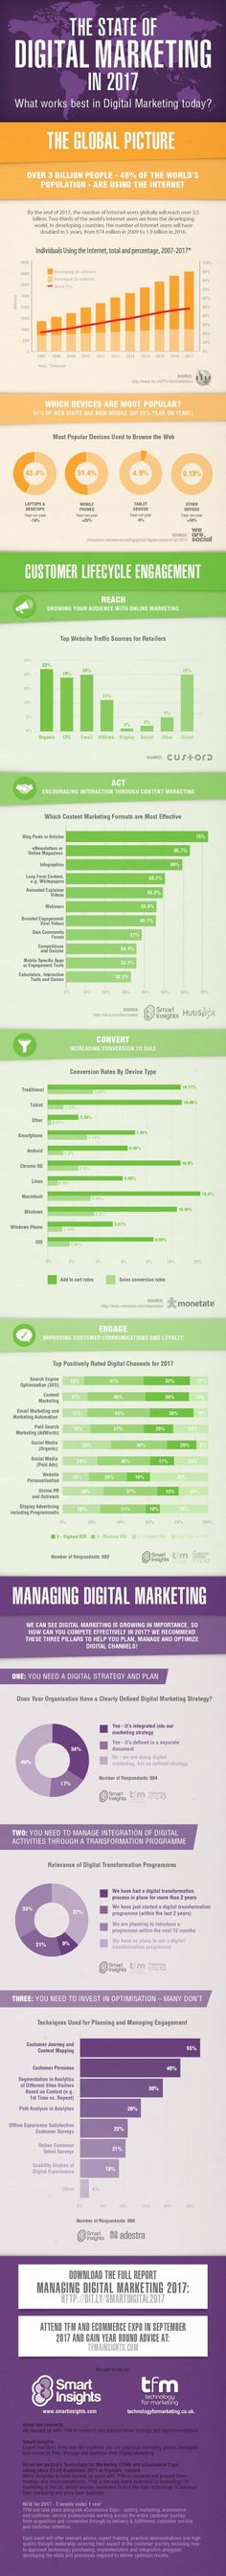 9 Digital Marketing Megatrends for 2018 - #infographic